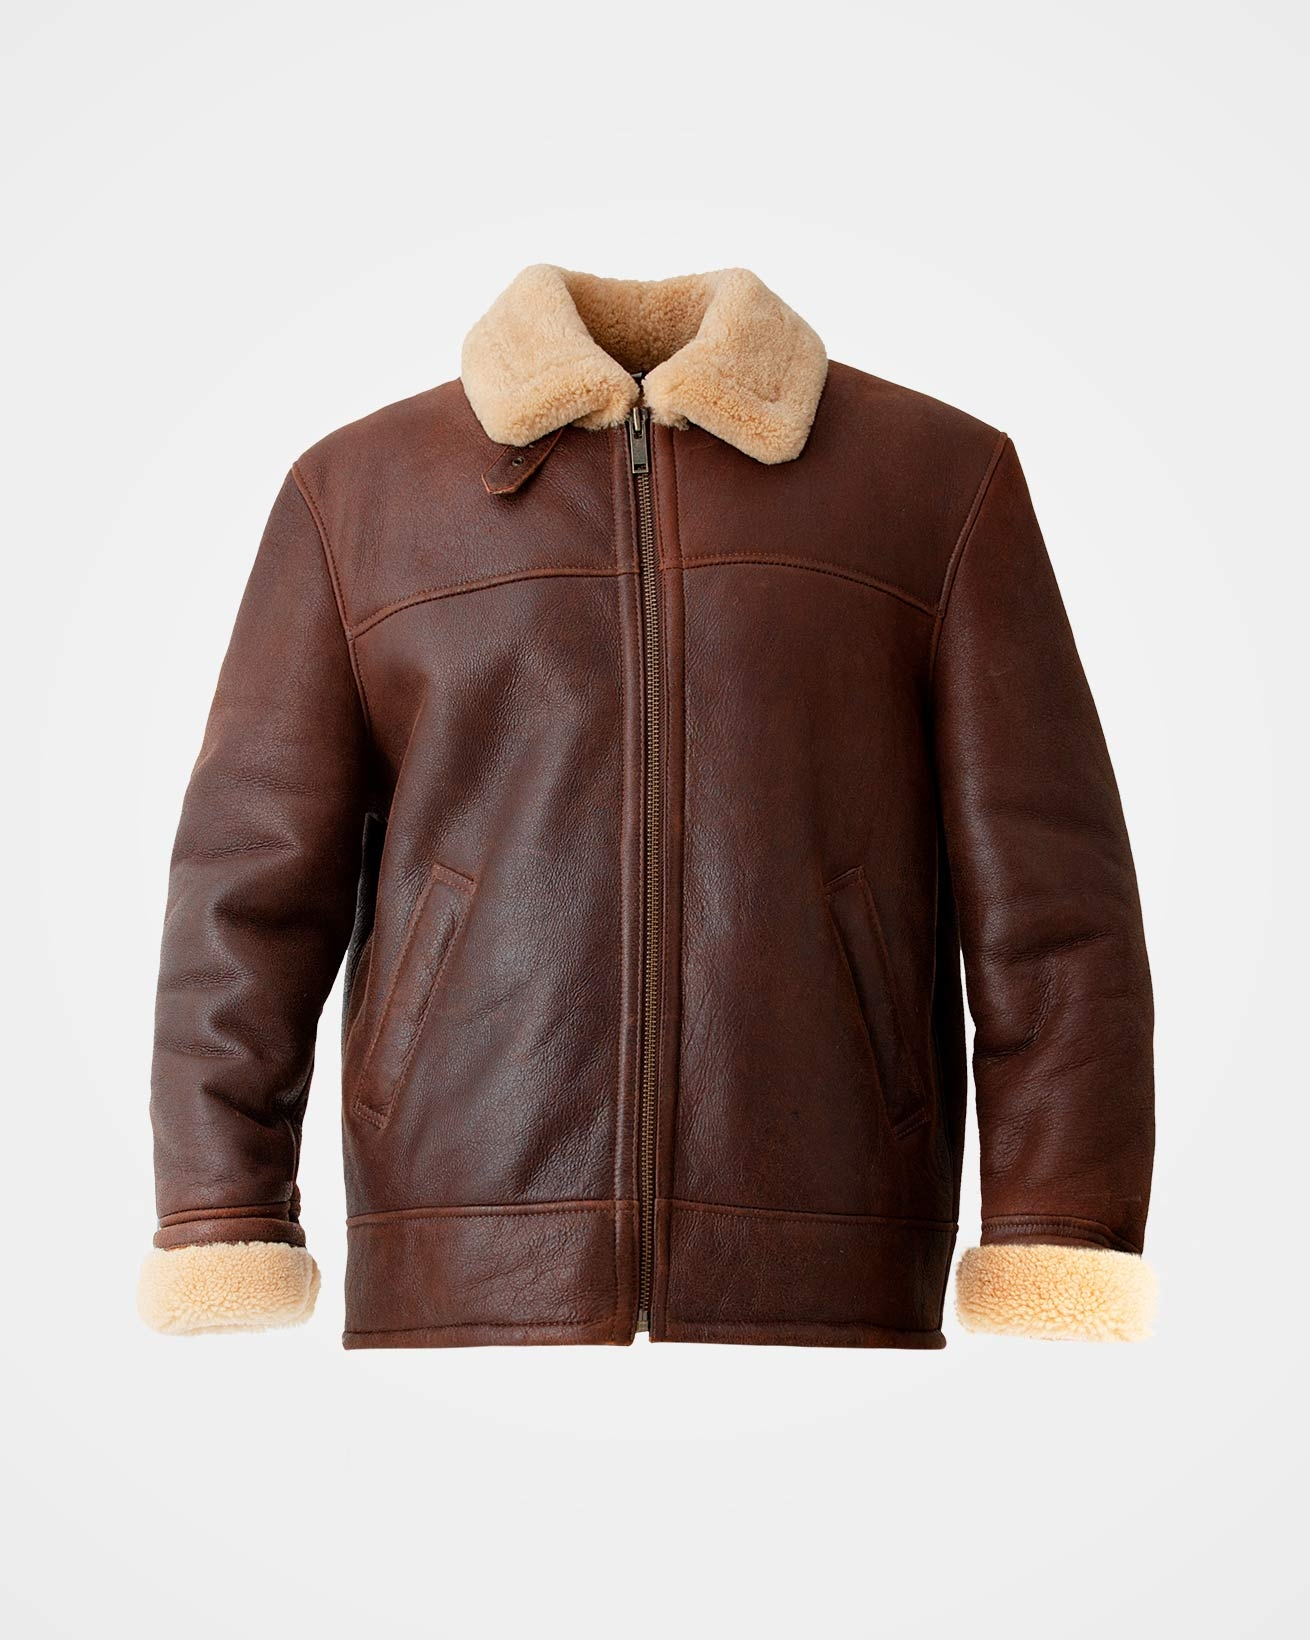 7070_mens-sheepskin-jacket_pecan_front.jpg